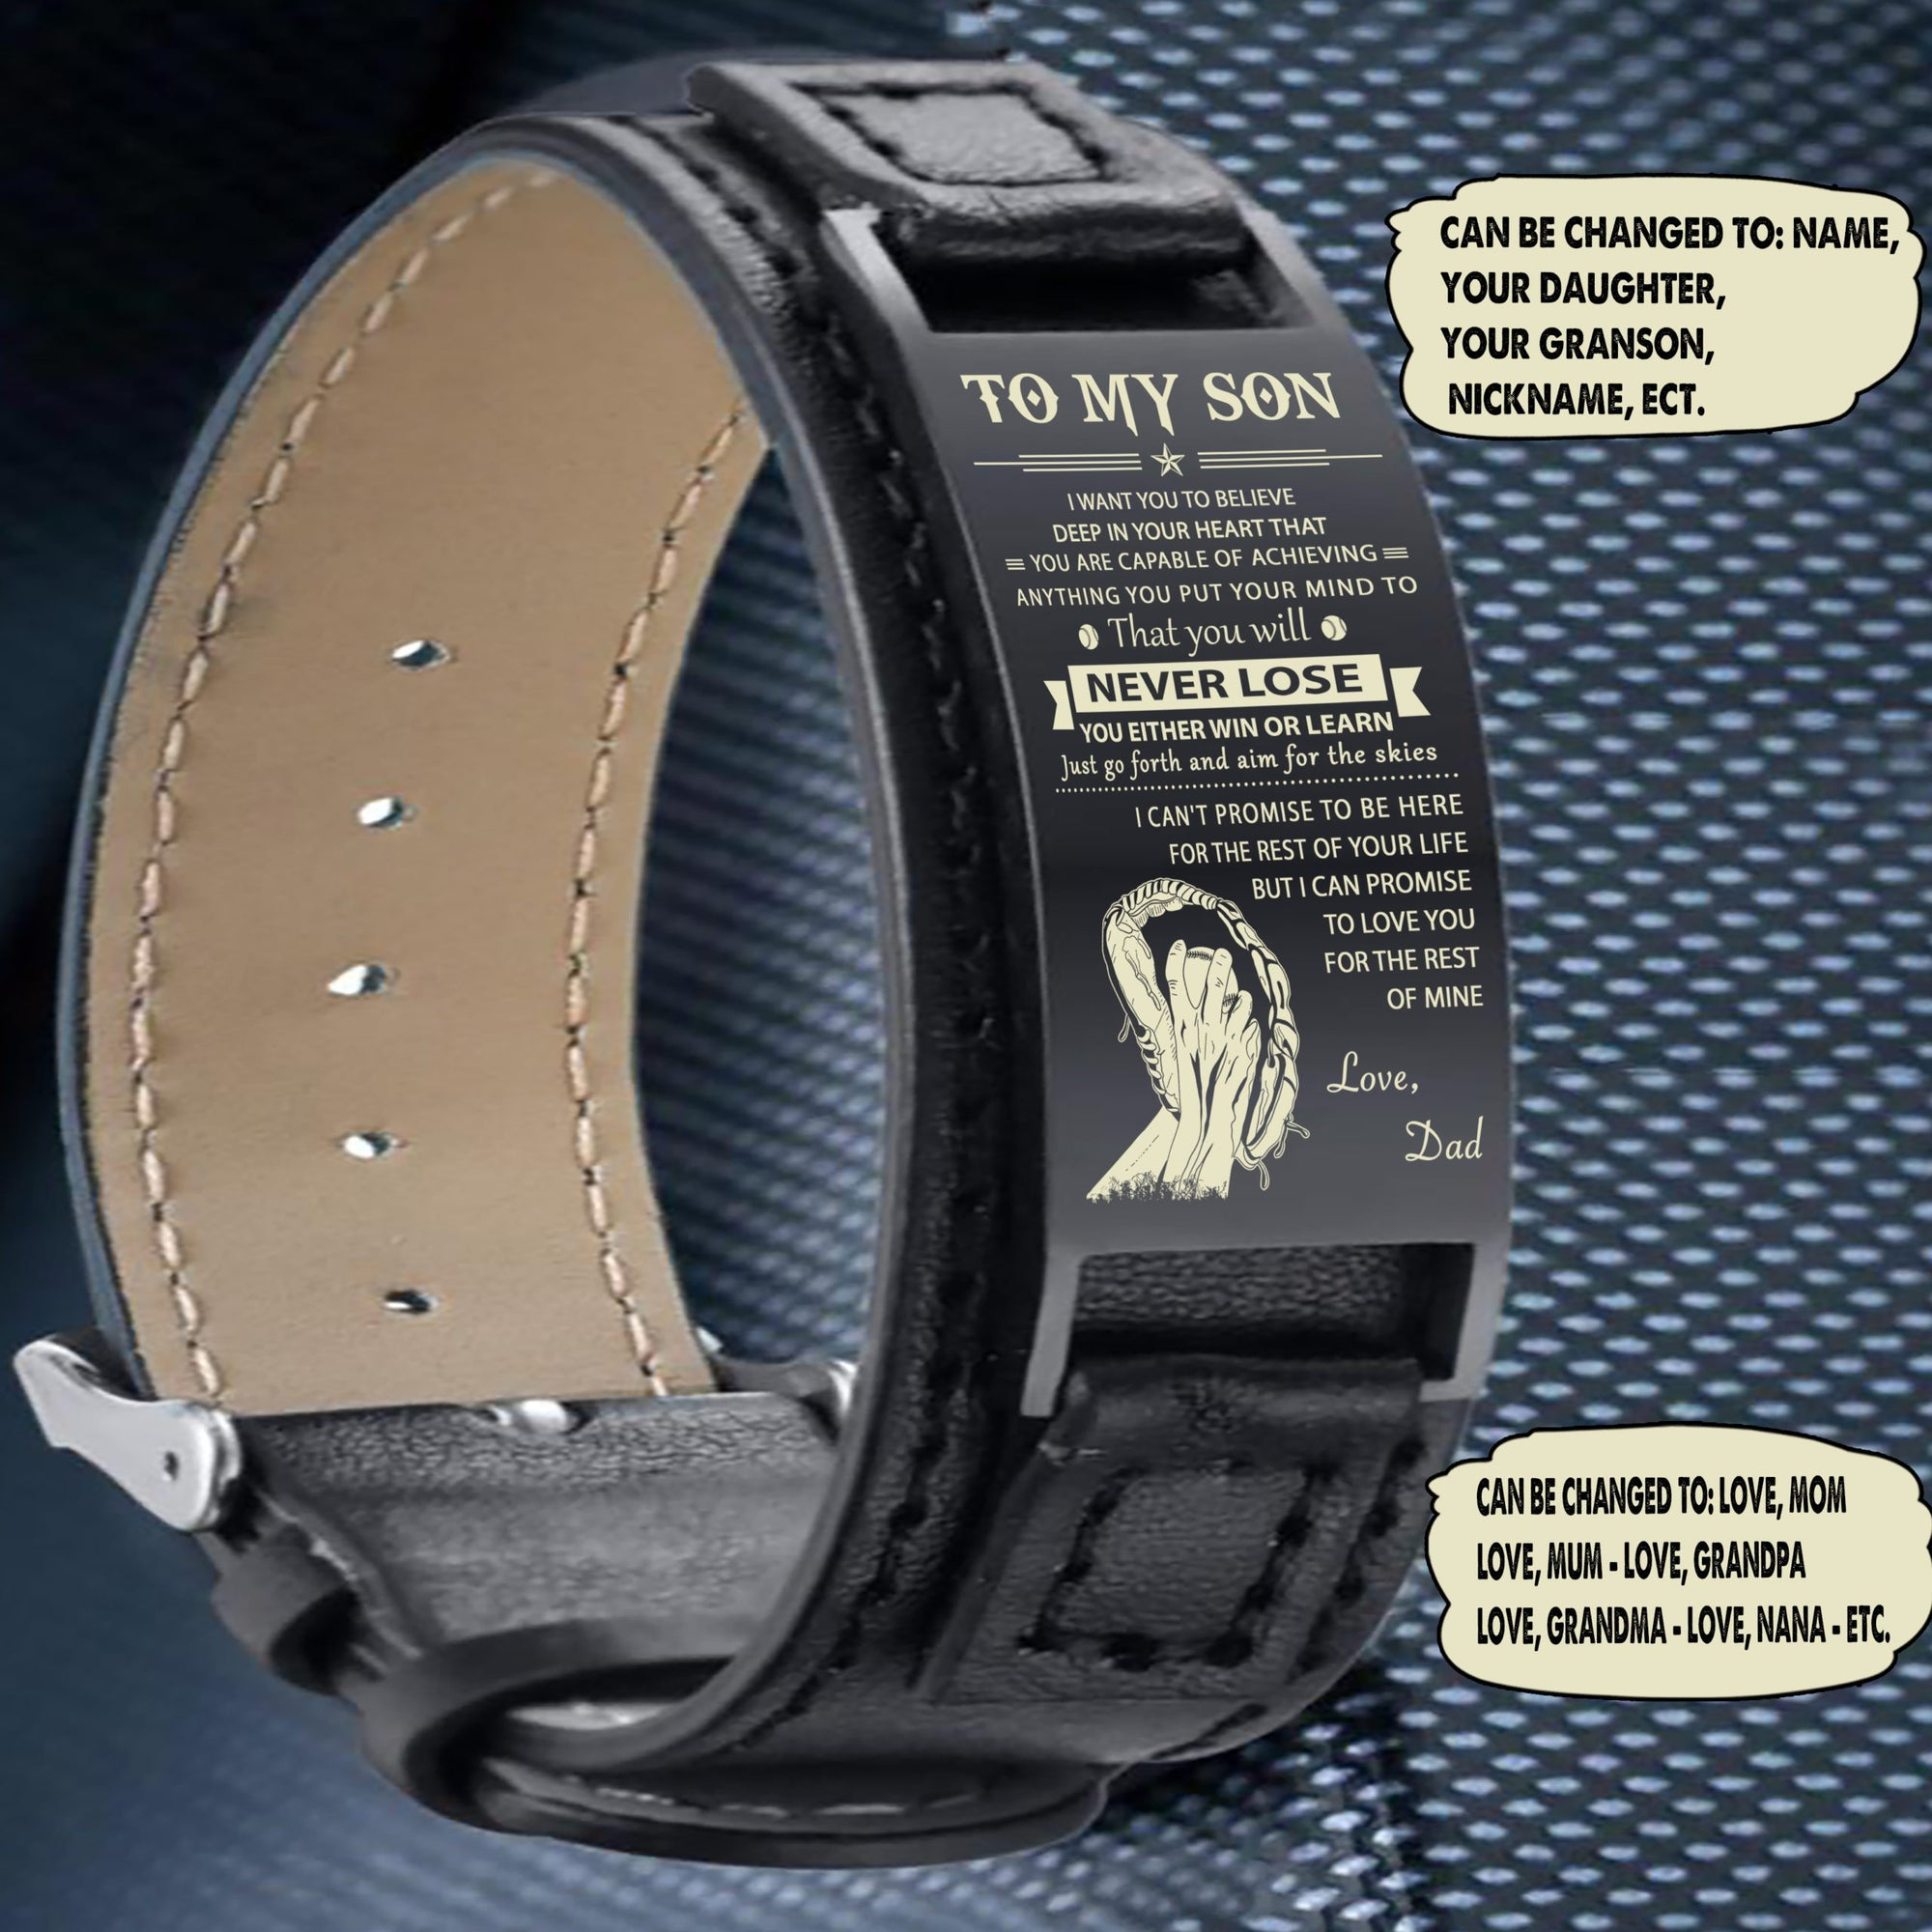 (LP127) Baseball Black Engraved Leather Steel Bracelets- Dad to son- never lose. FREE SHIPPING FROM 2 ITEMS